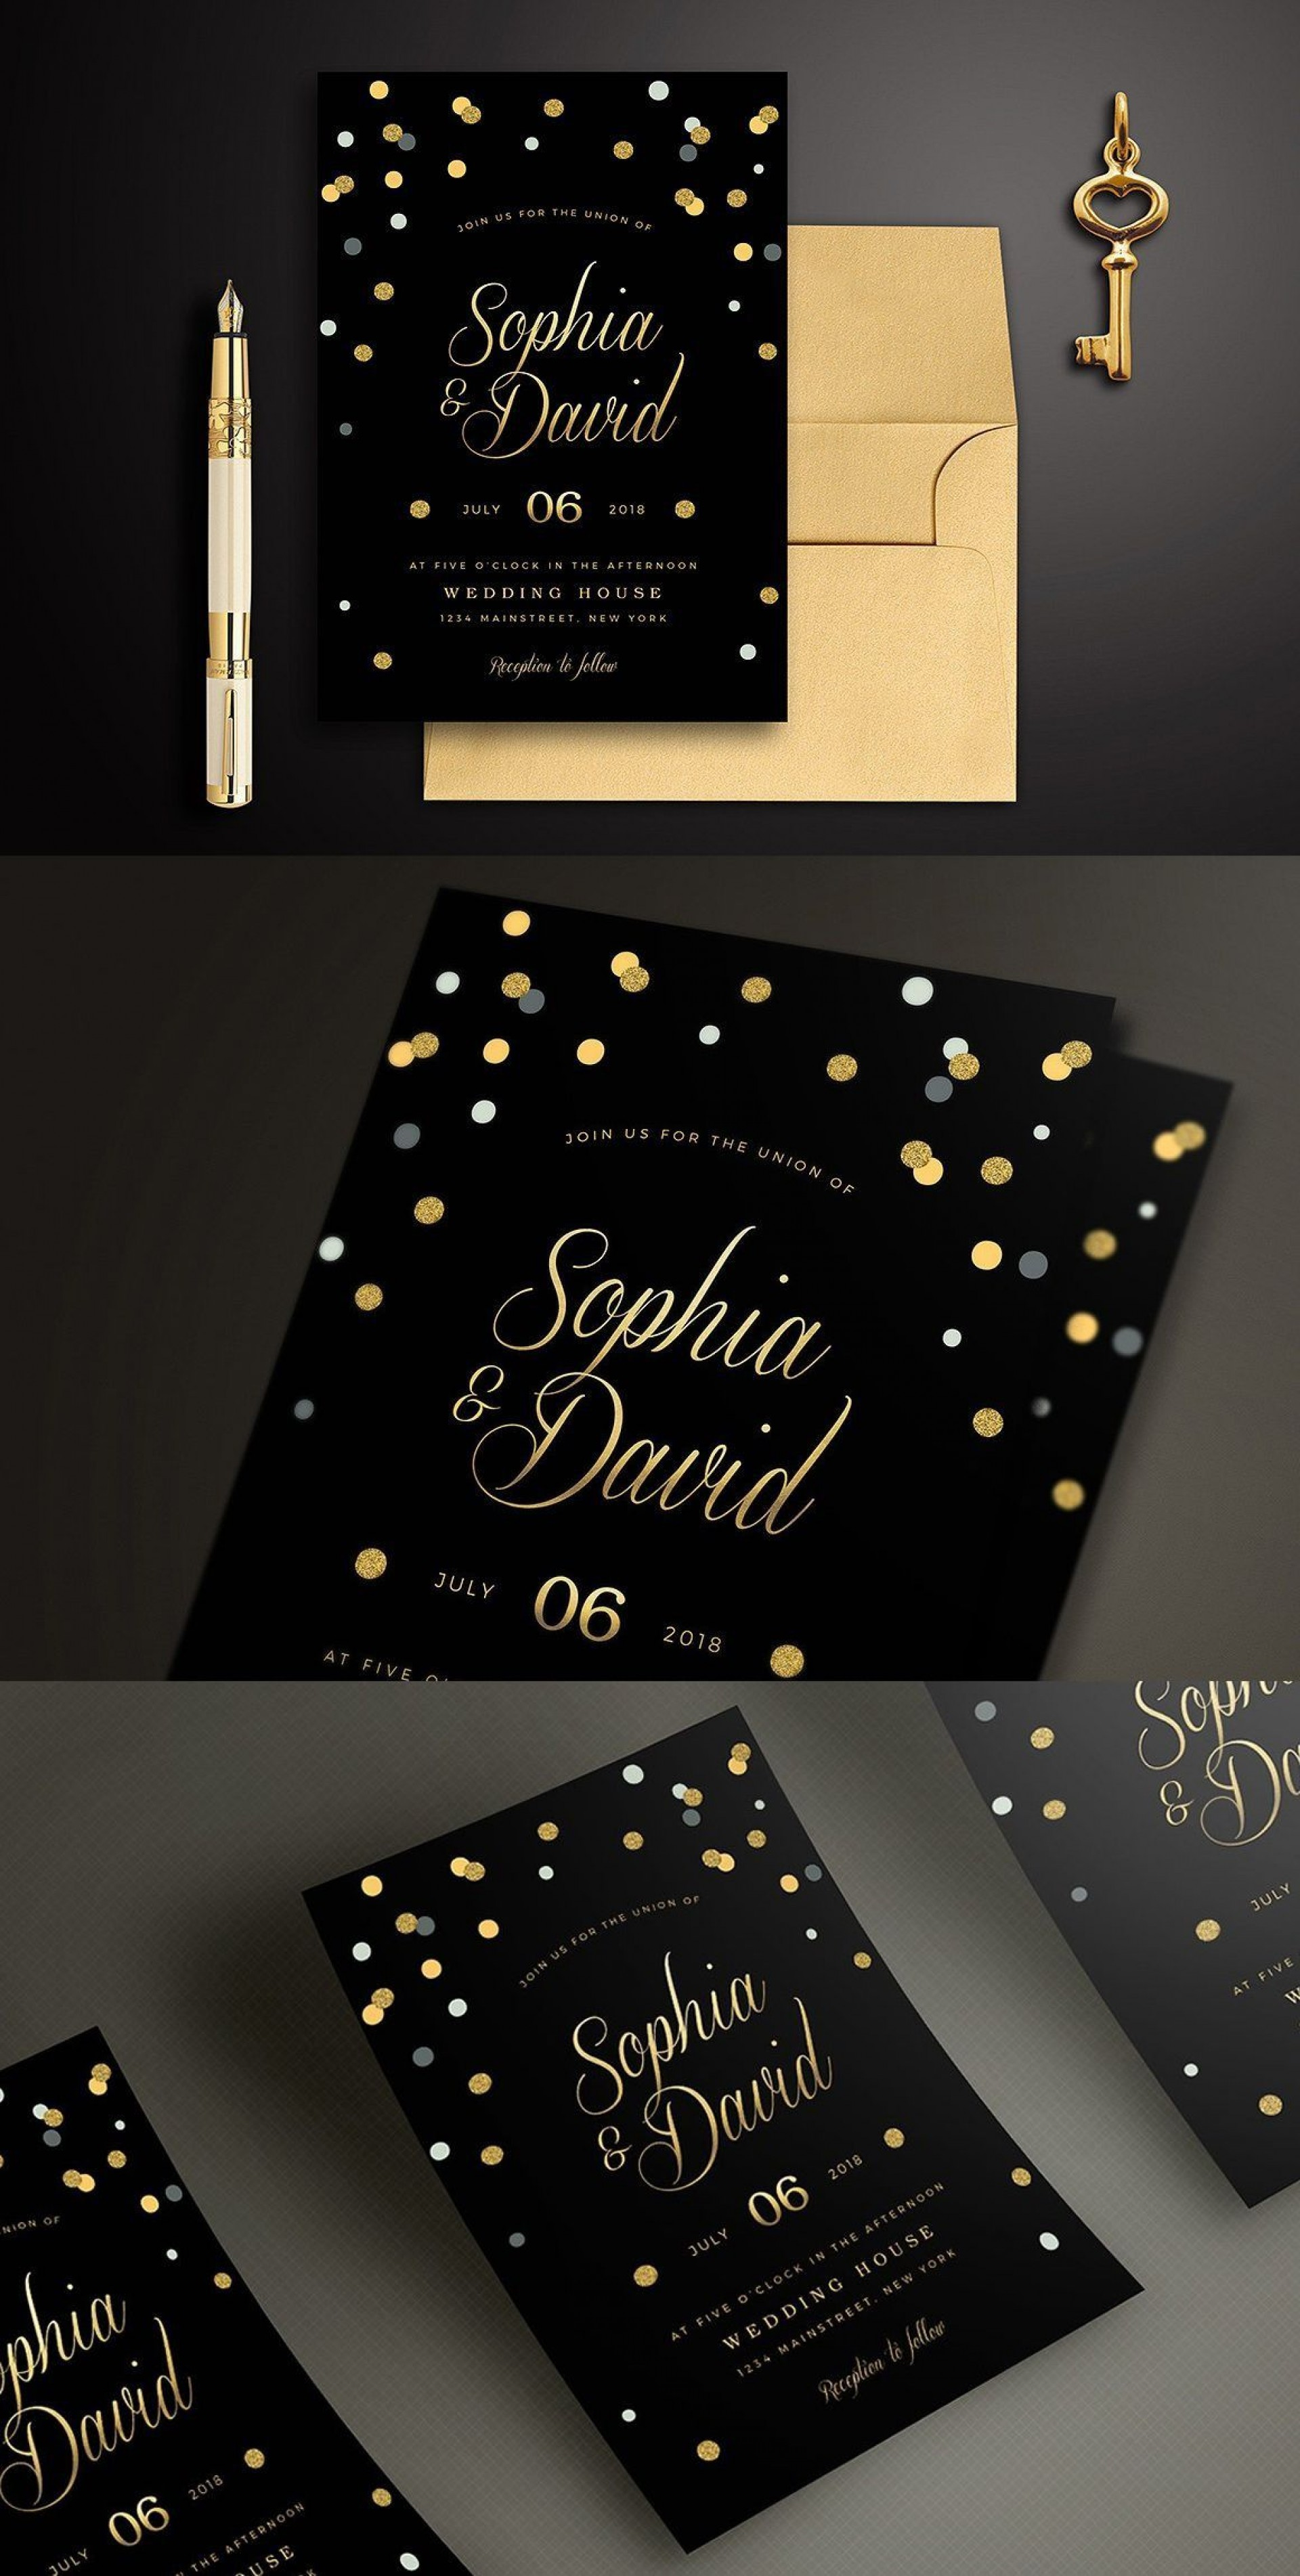 004 Archaicawful Black And Gold Invitation Template Highest Clarity  Design White Free Printable1920